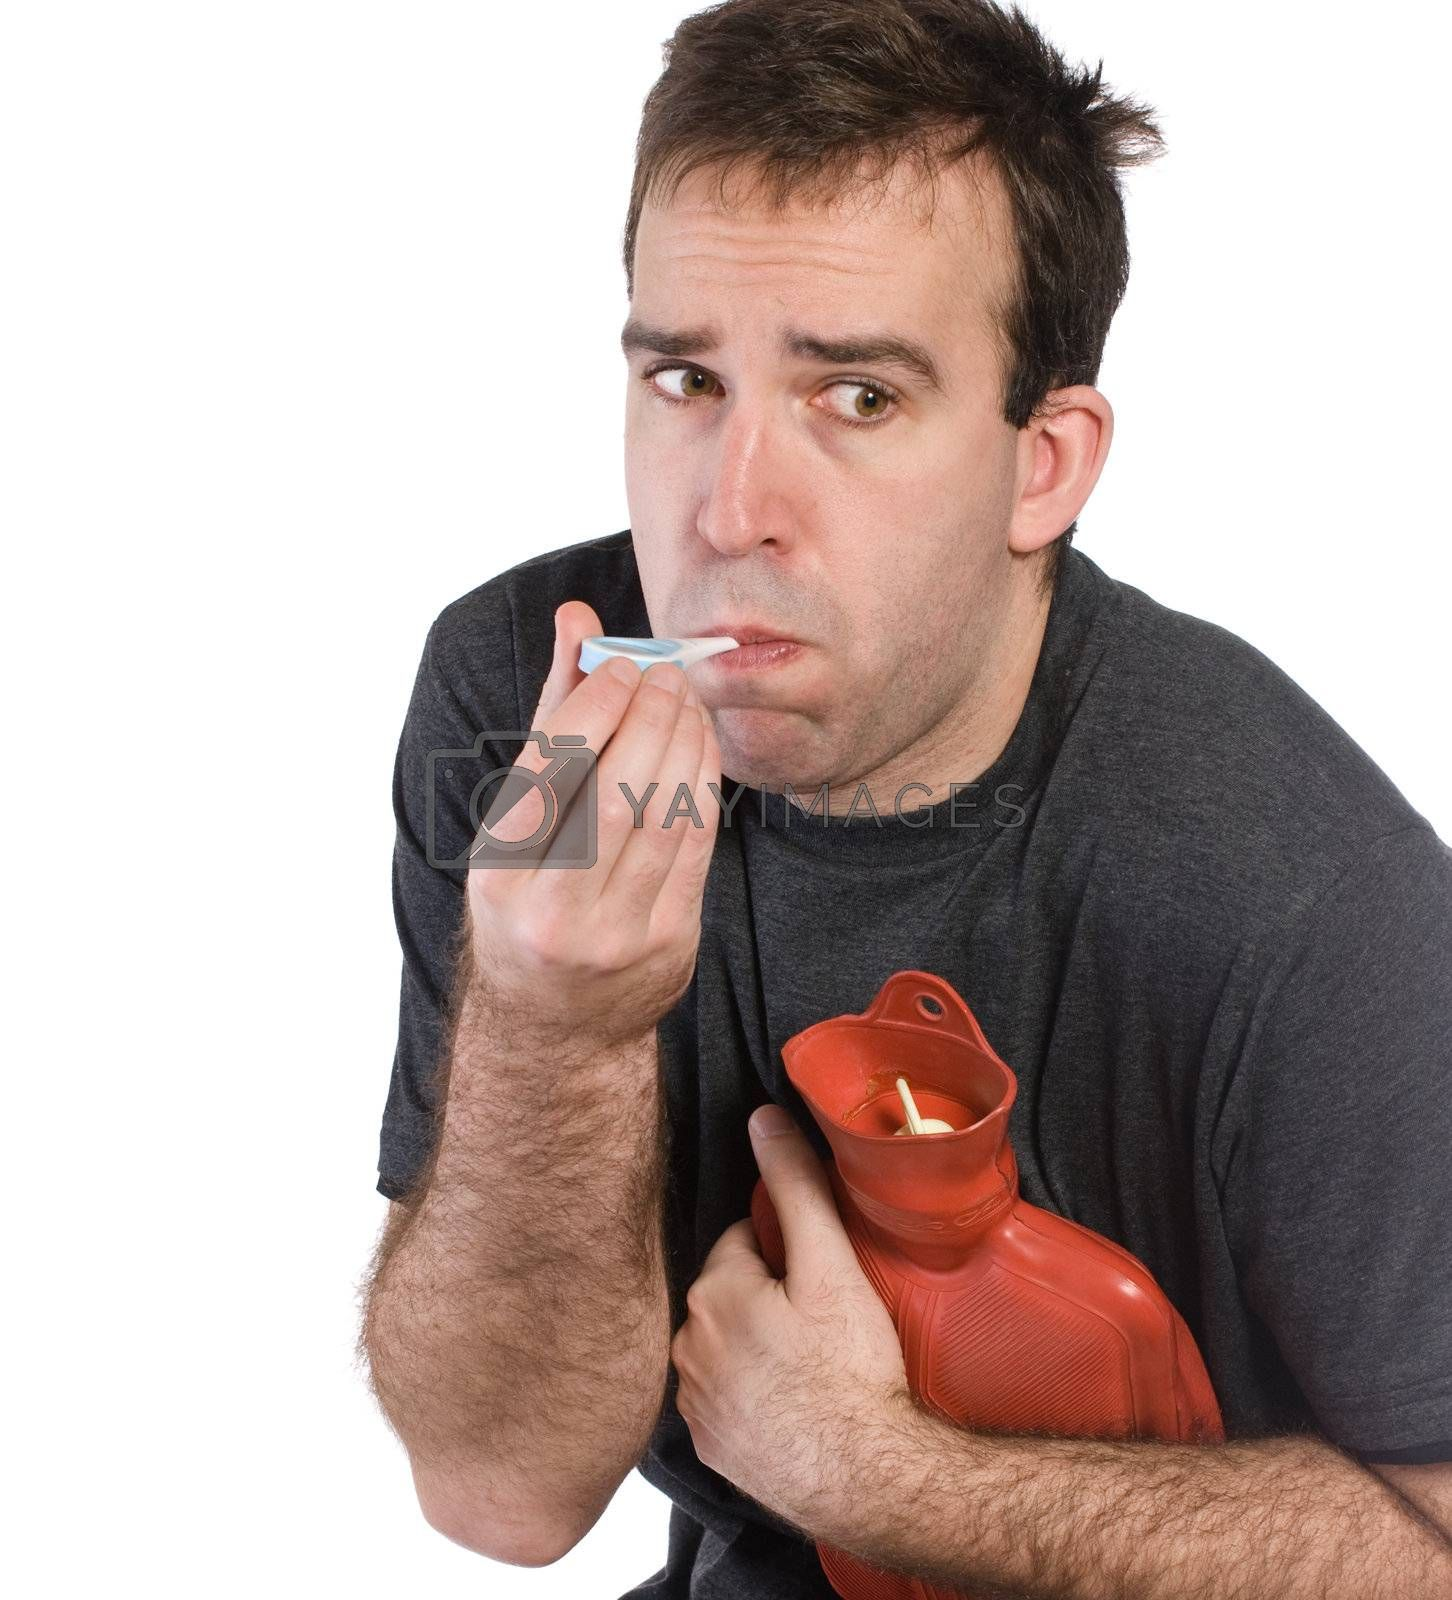 Closeup of a sick man taking his temperature and holding a hot water bottle to his stomach, isolated against a white background